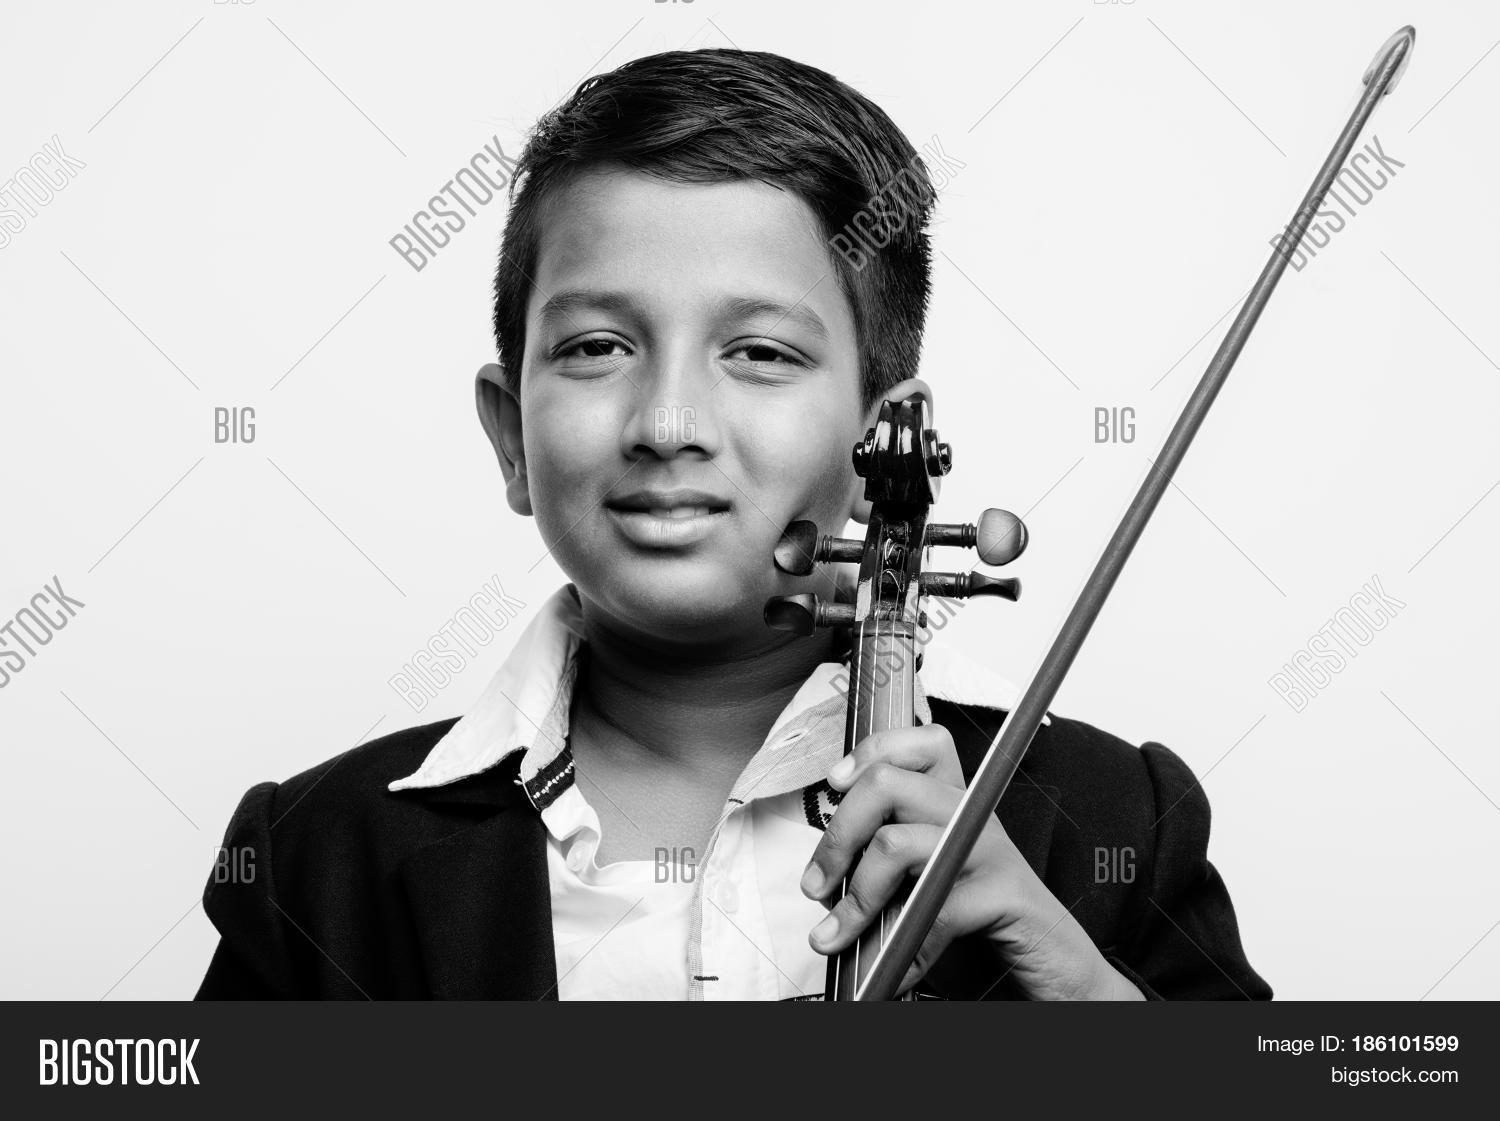 Cute Little Indian/ Image & Photo (Free Trial) | Bigstock